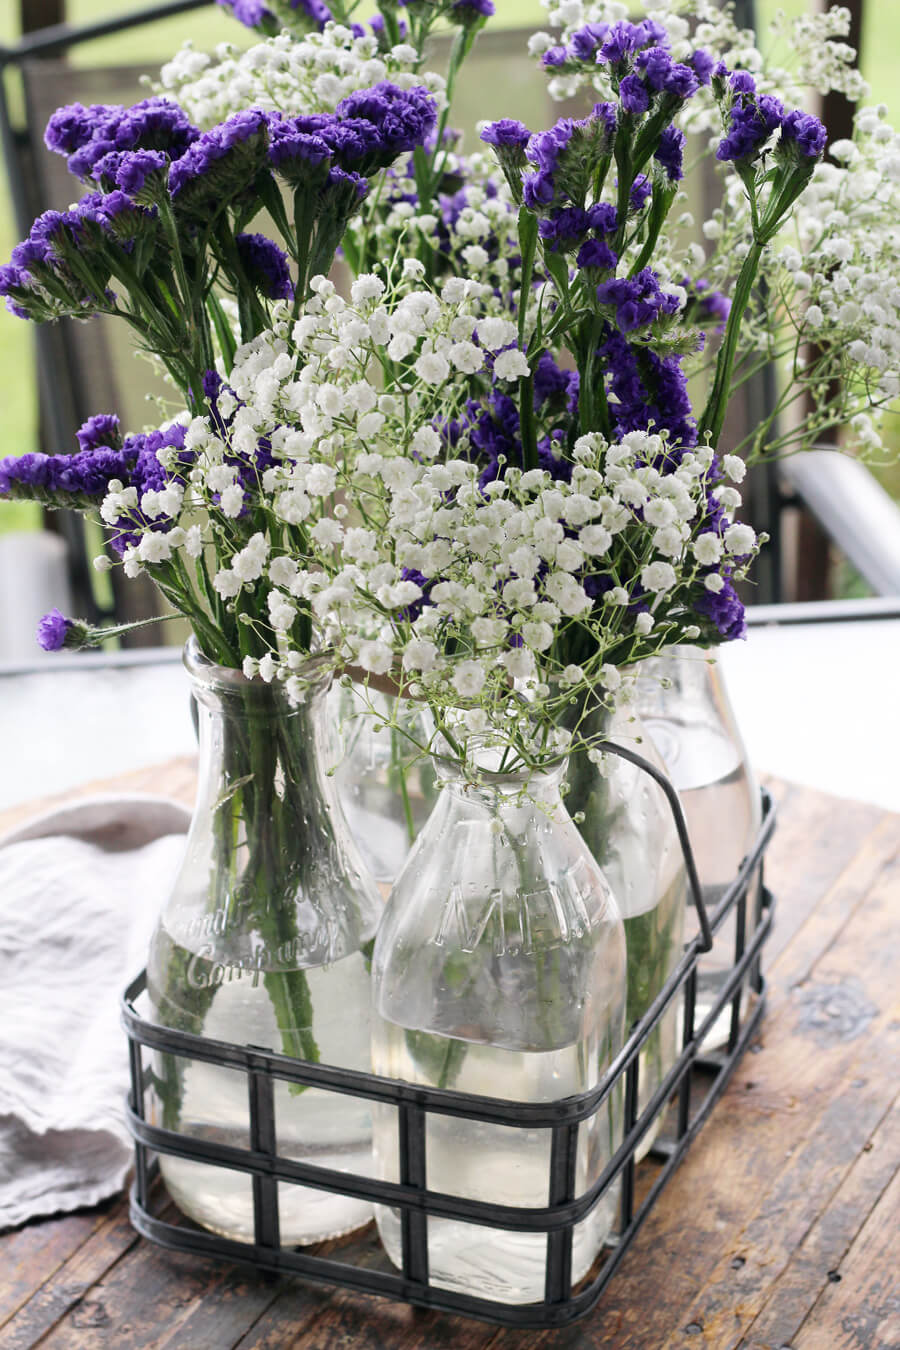 A flower arrangement of baby's breath and purple flowers in vintage milk bottles